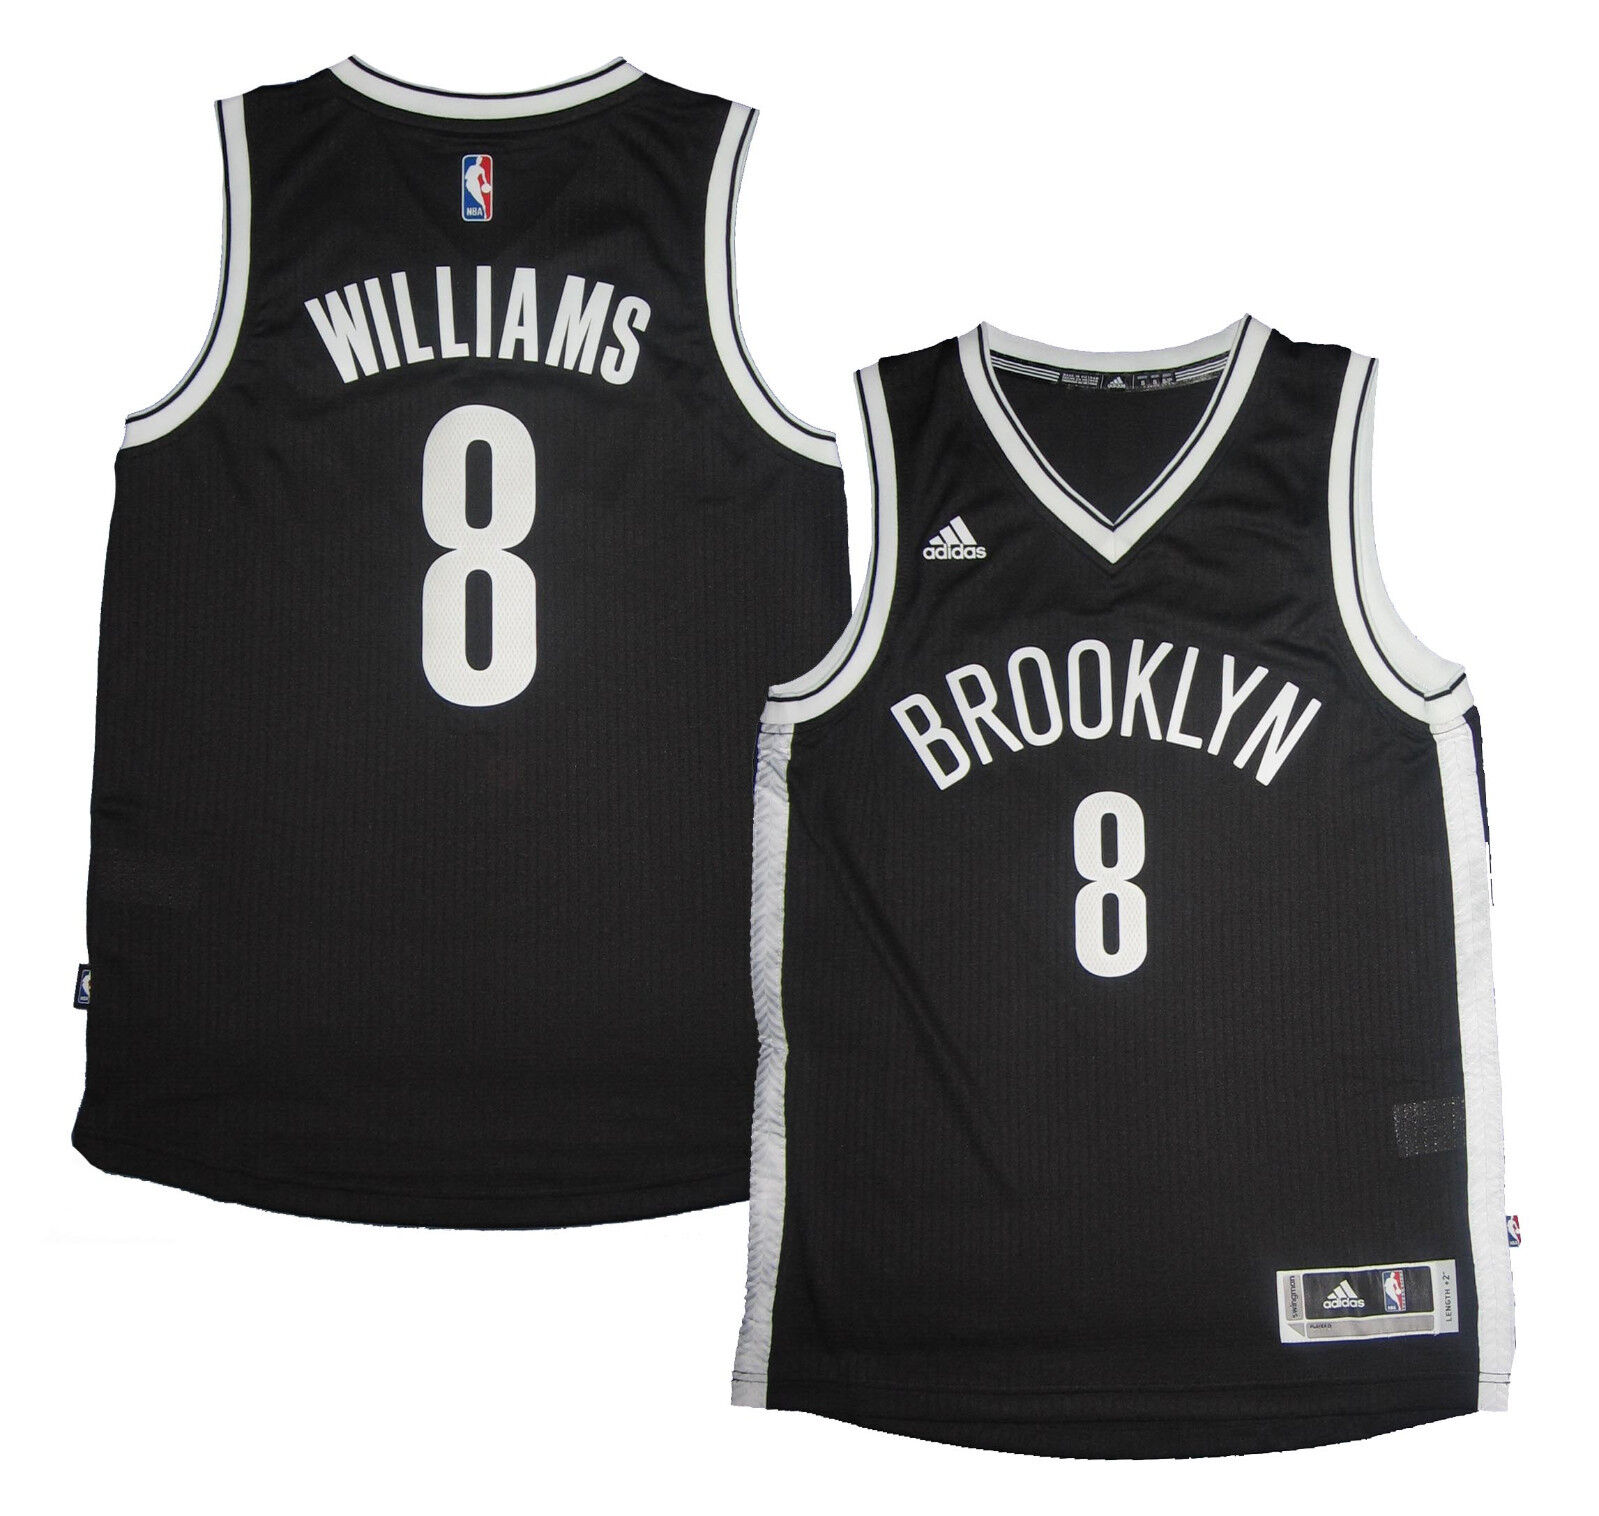 Maillot swingman NBA Brooklyn Nets swingman Maillot Adidas Deron Williams bb9221